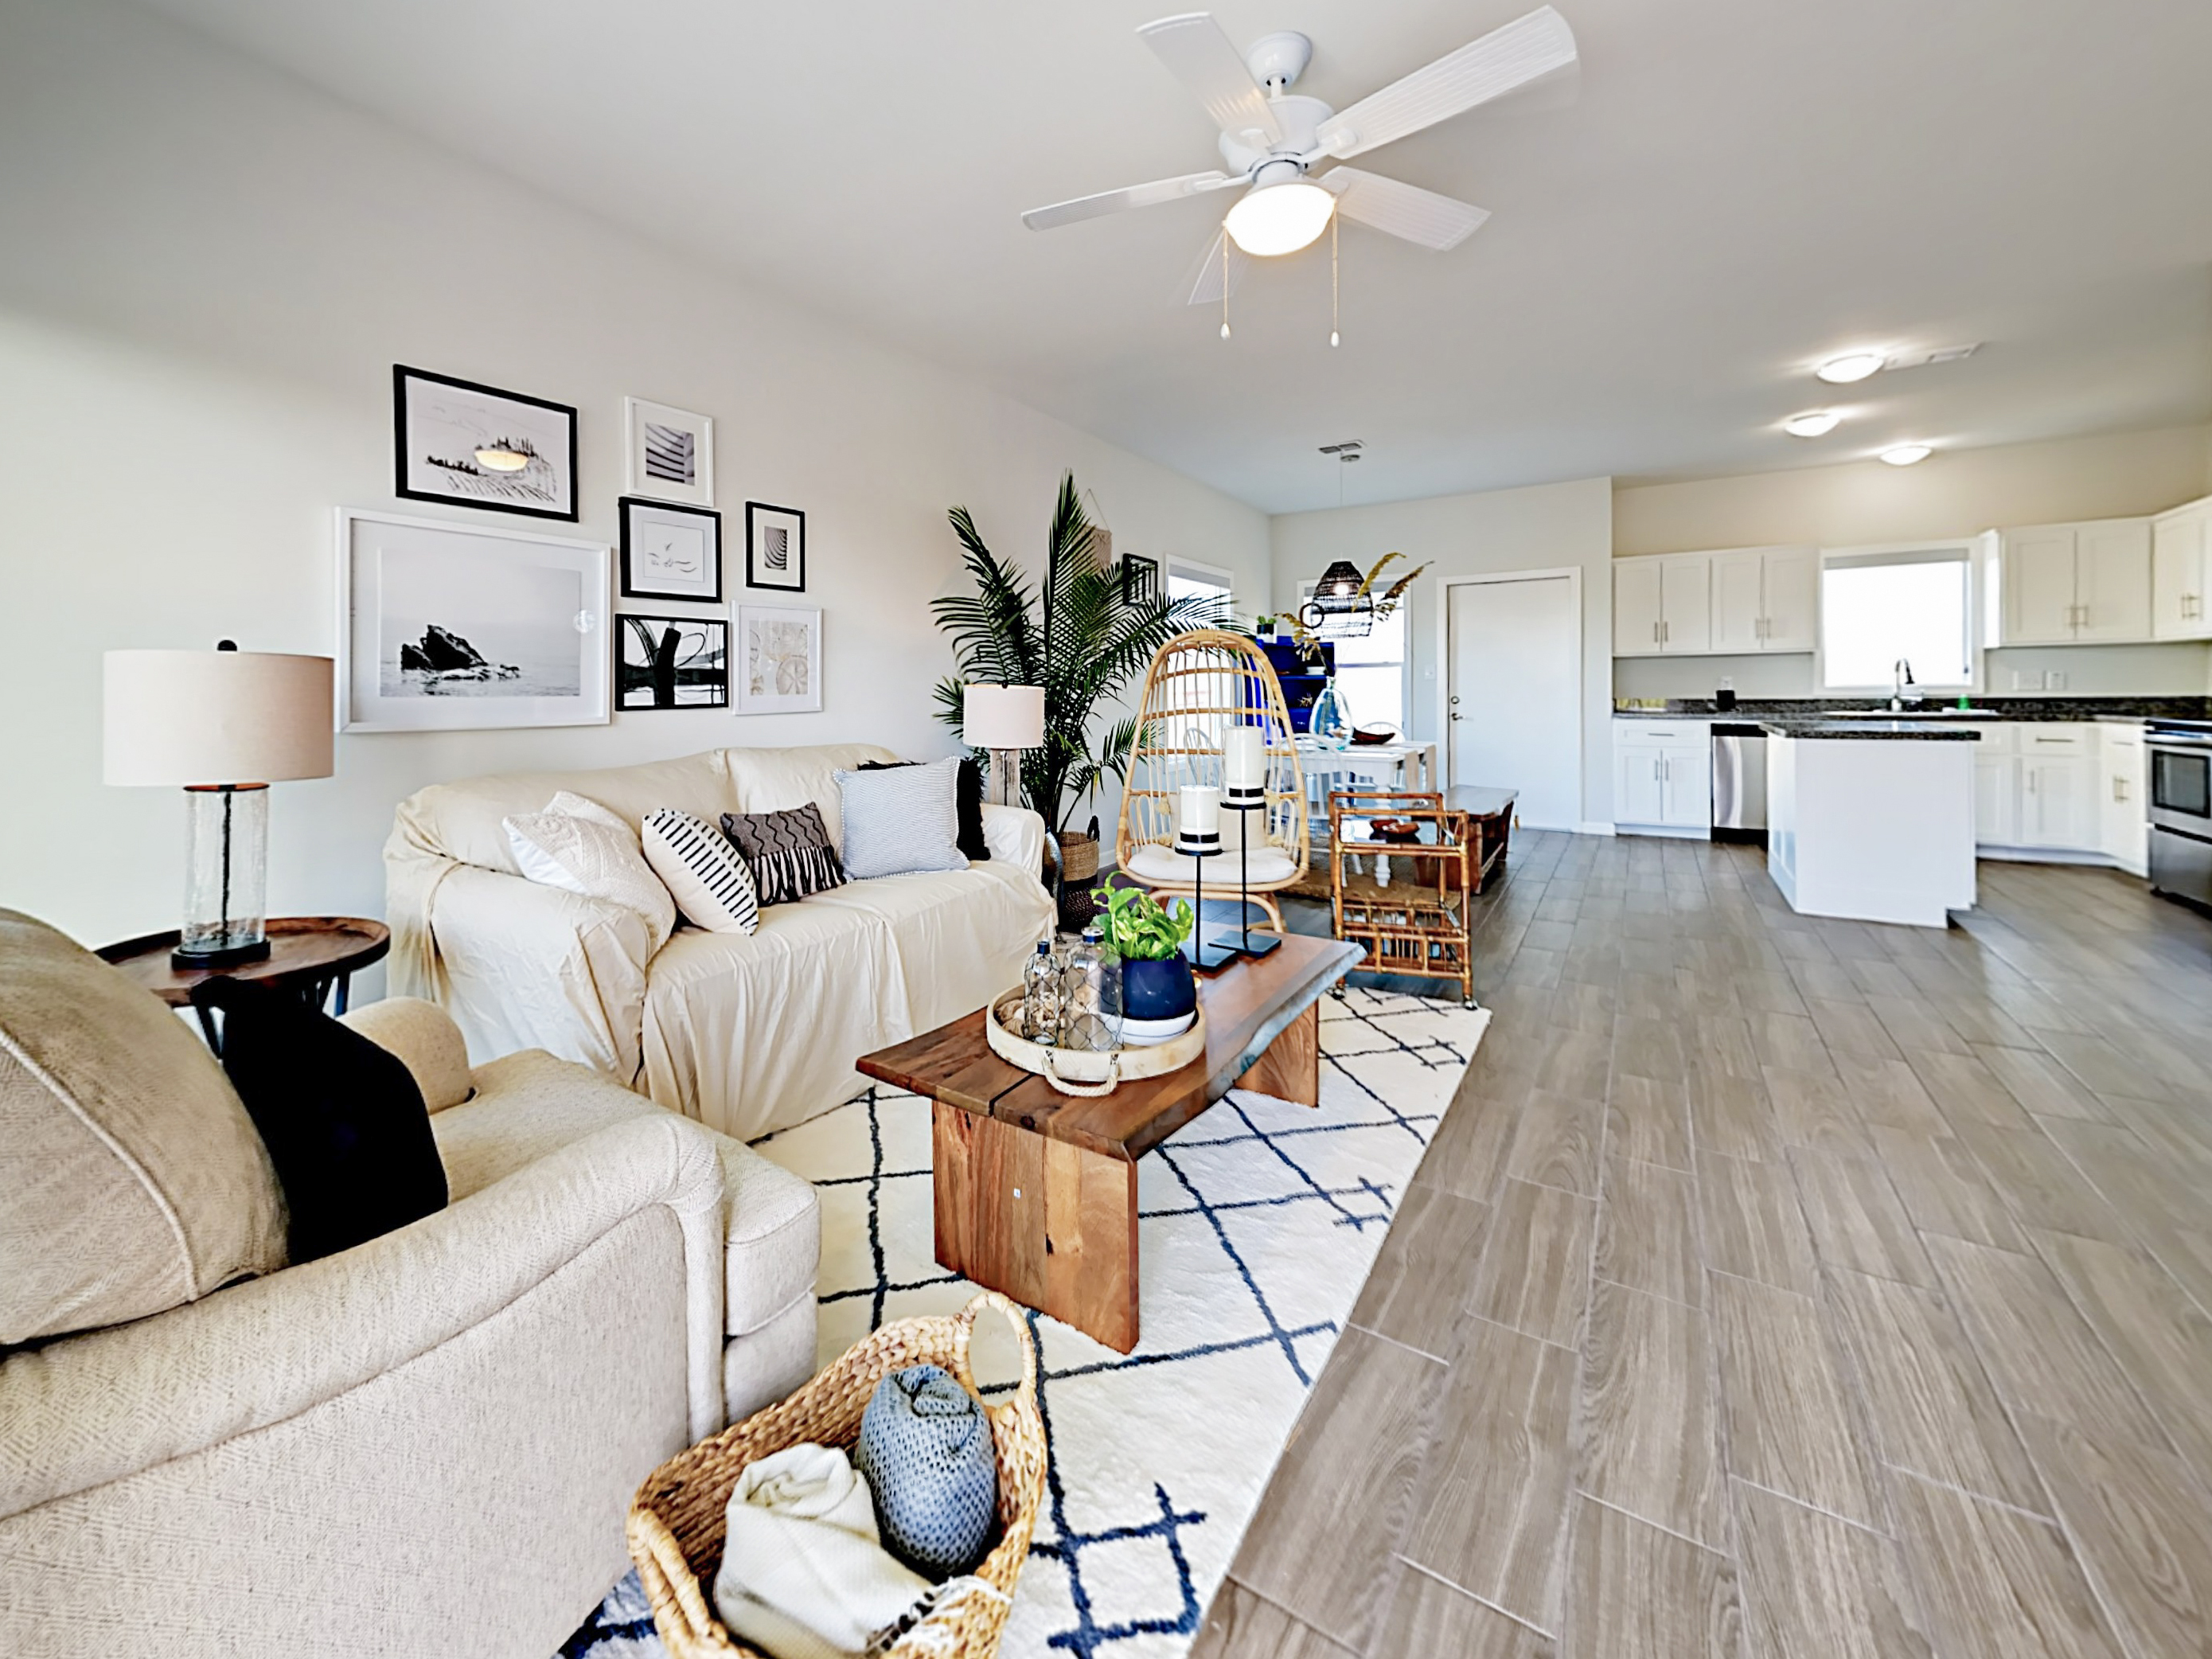 Port Isabel TX Vacation Rental Welcome to South